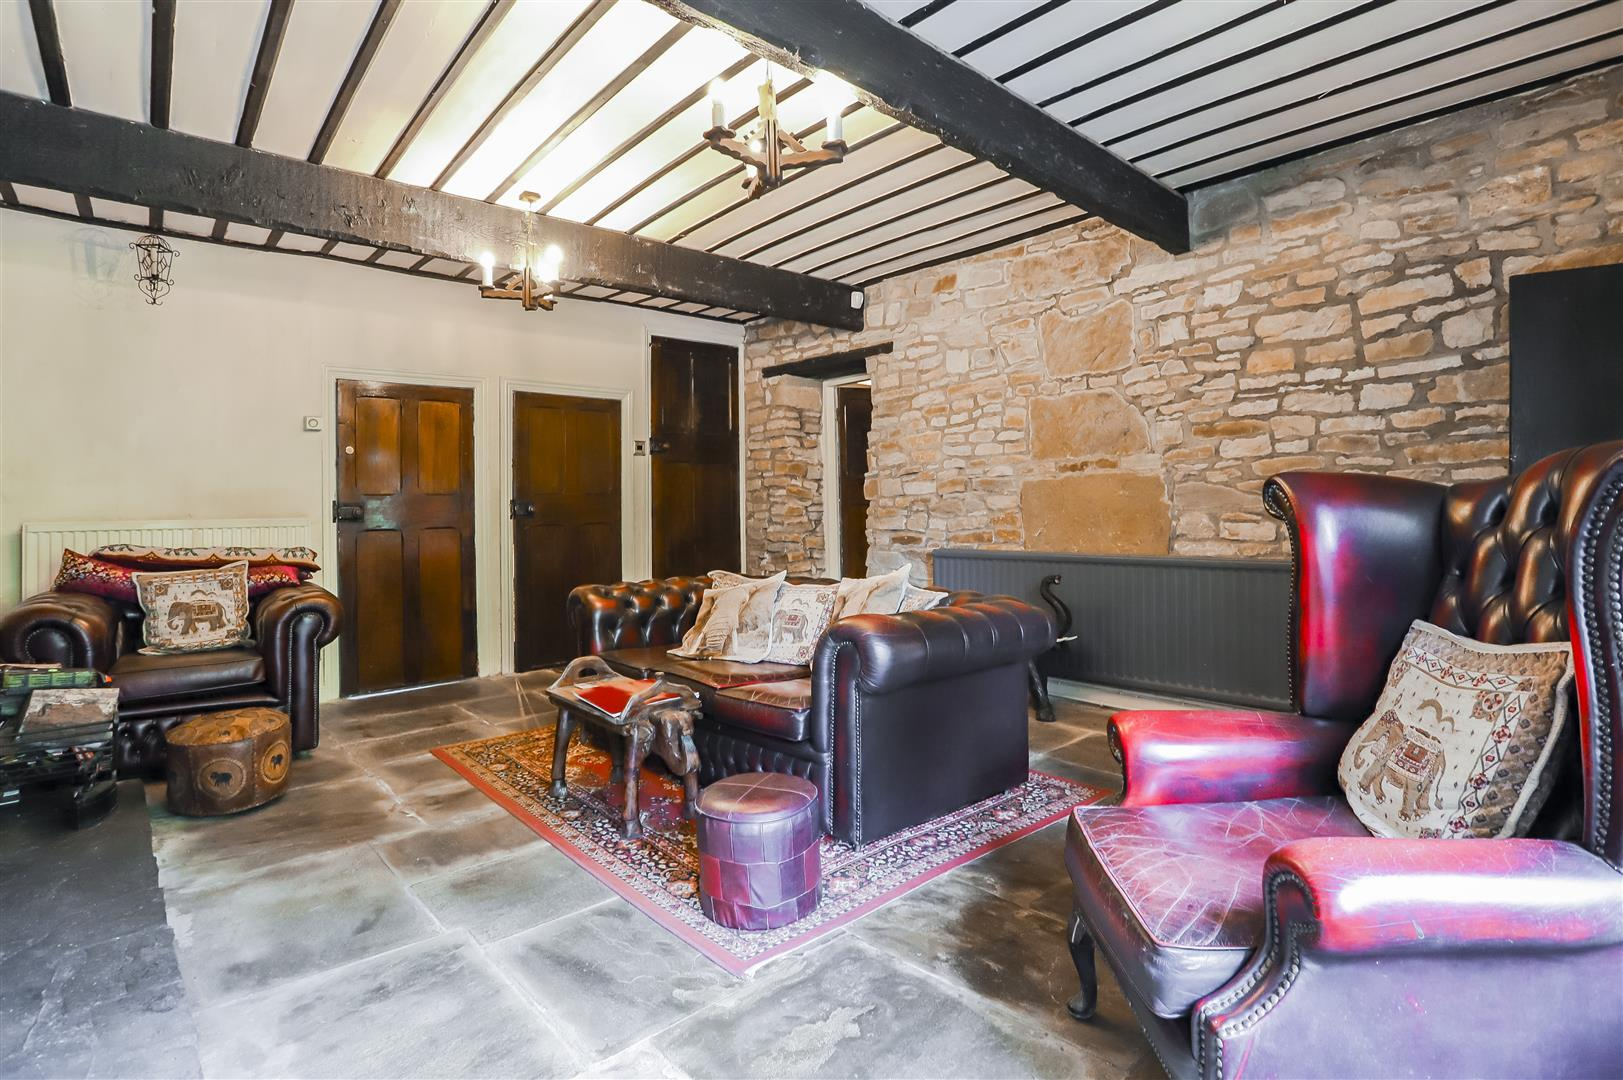 3 Bedroom House For Sale - Image 14